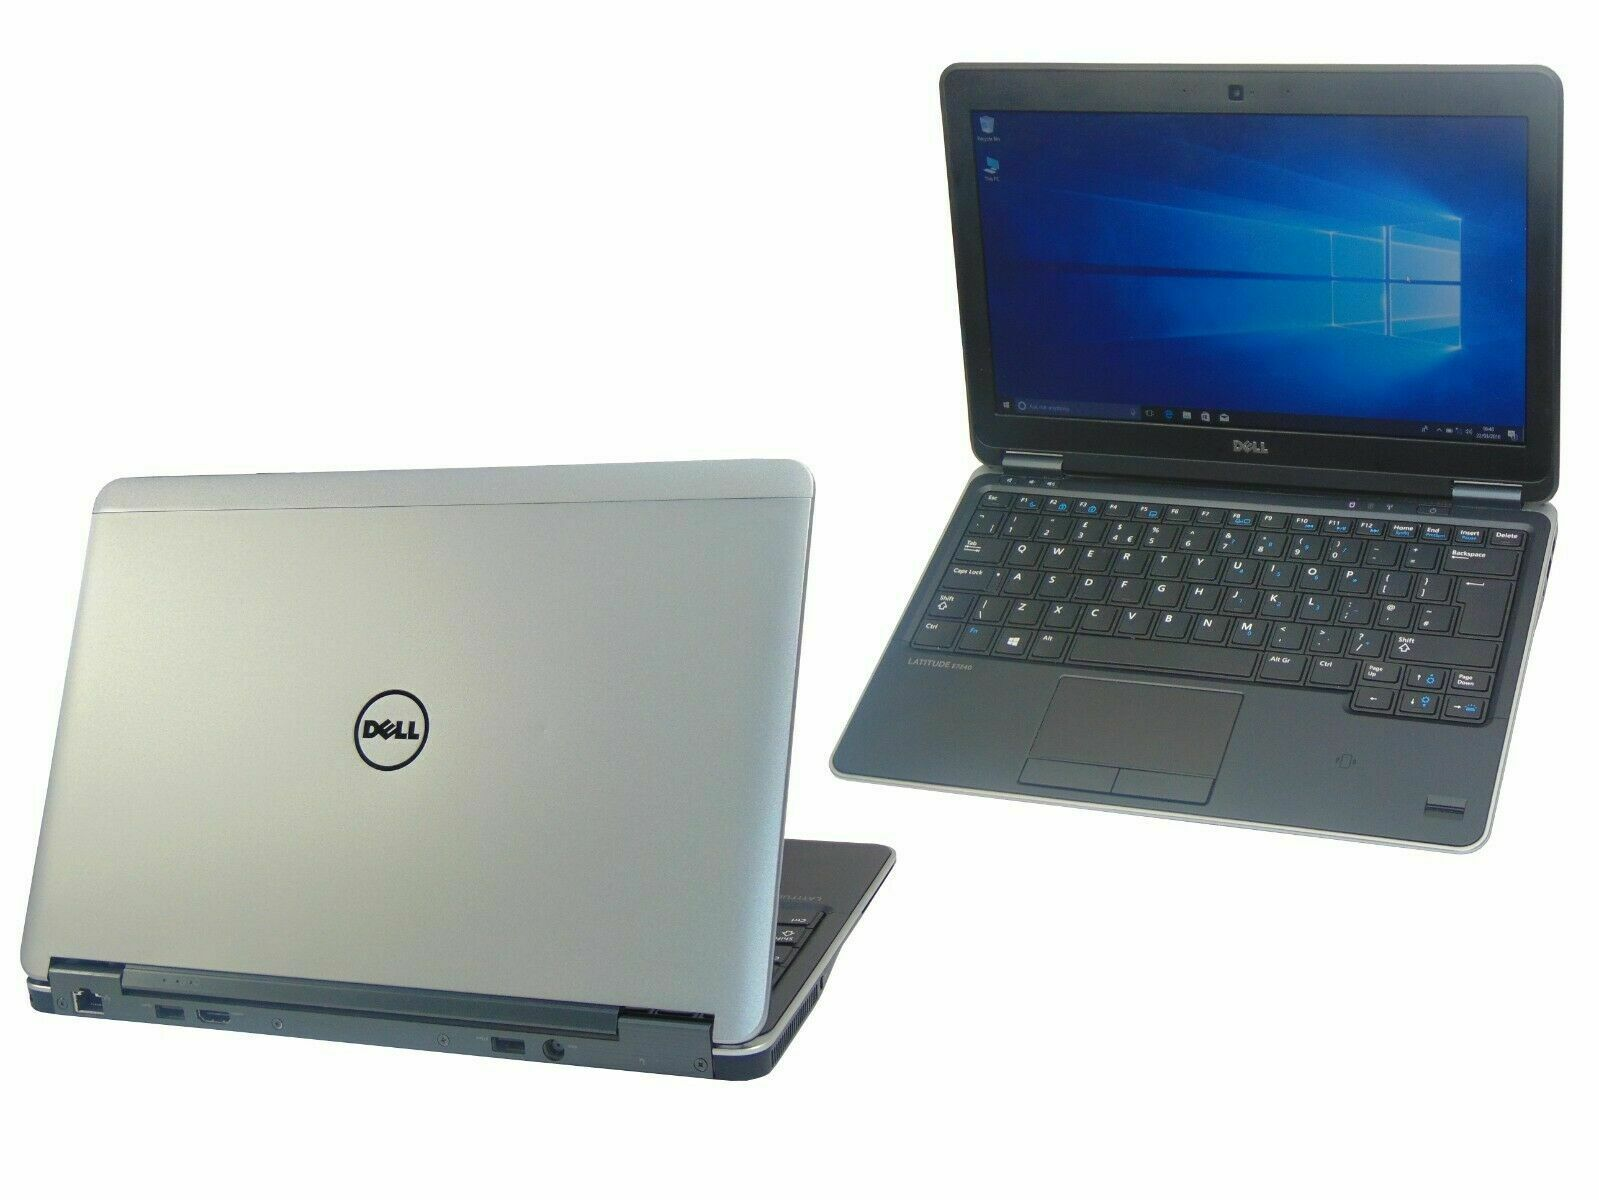 Laptop Windows - FAST Dell Laptop Windows 10 Latitude E7240 Core i3-4030U 16GB 256GB SSD Webcam